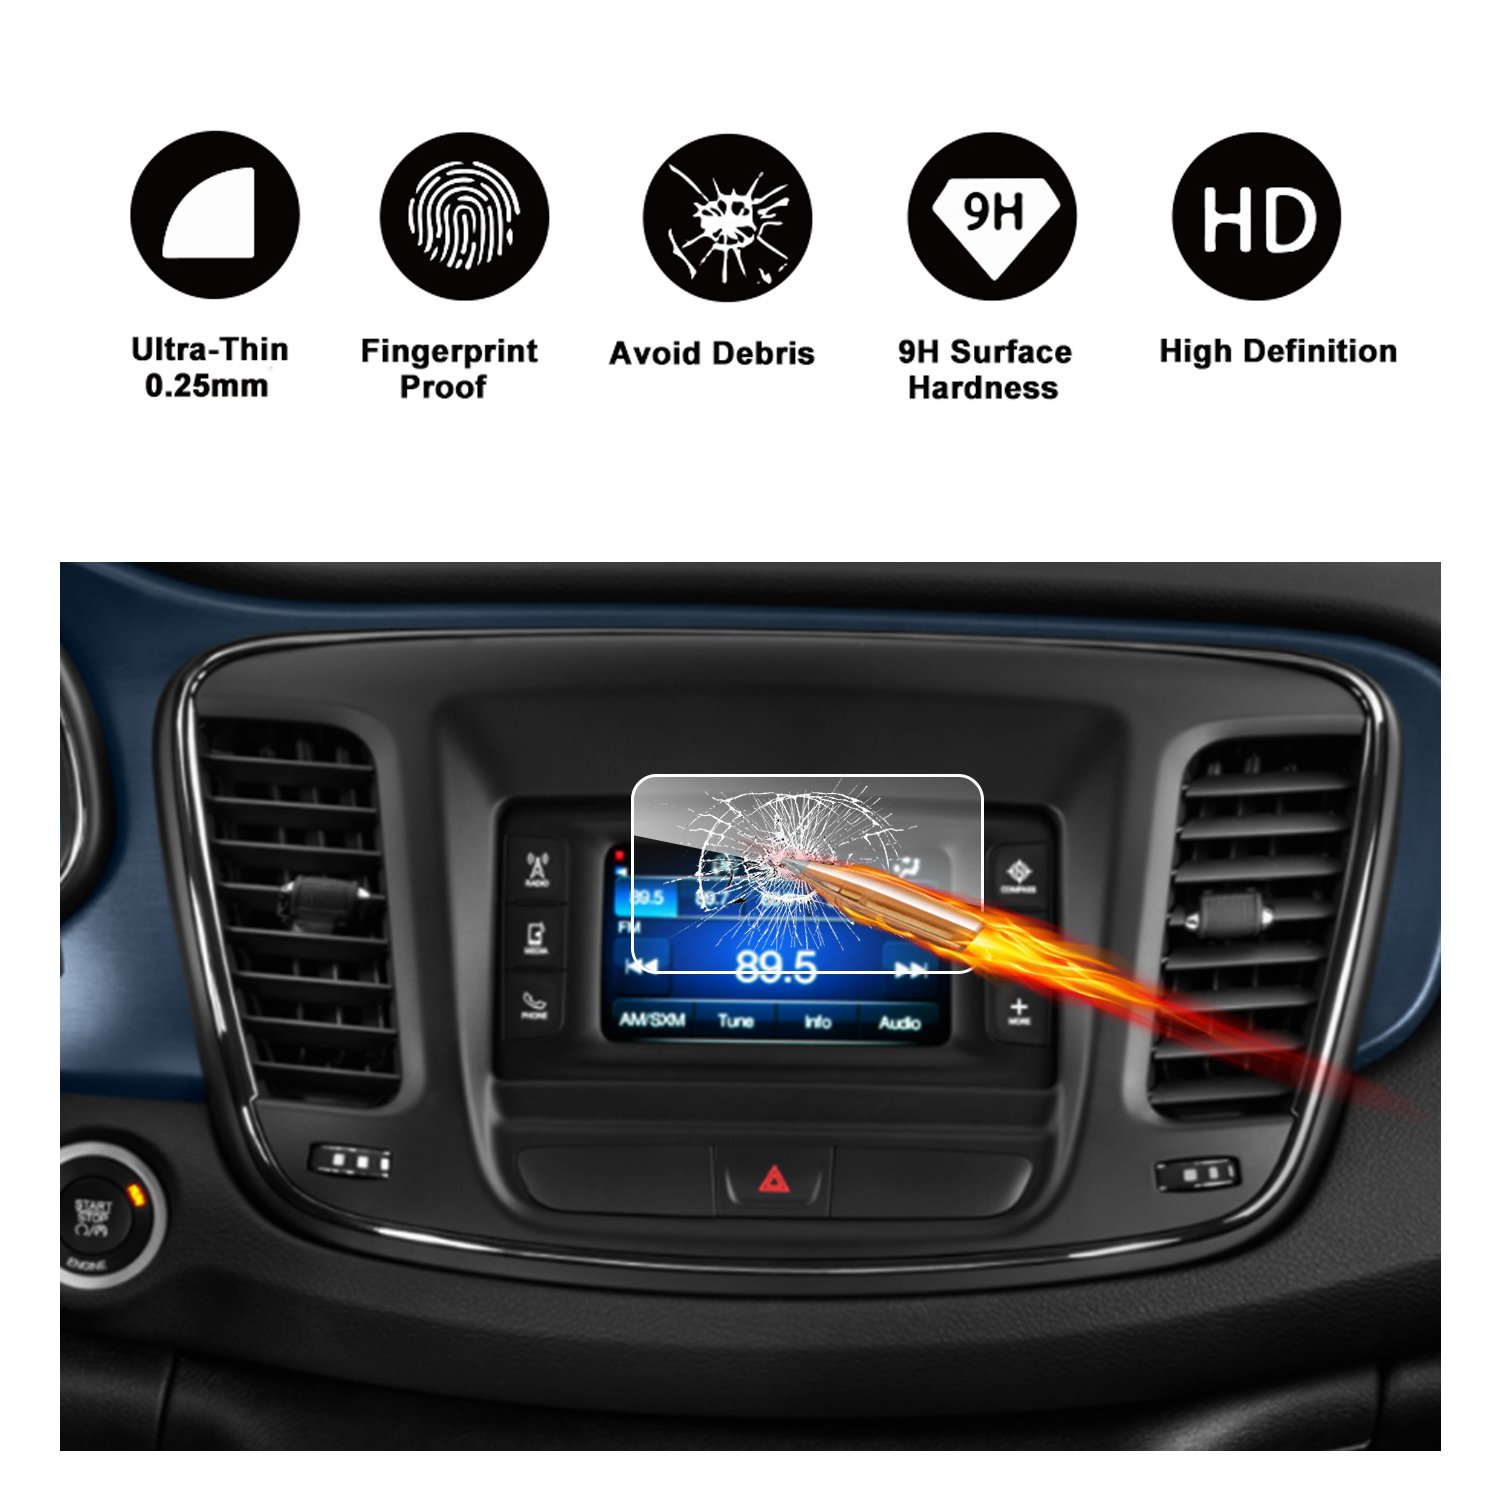 Fca Group 2017 North American Map For Uconnect 730n Rhr.Cheap Uconnect Map Update Find Uconnect Map Update Deals On Line At